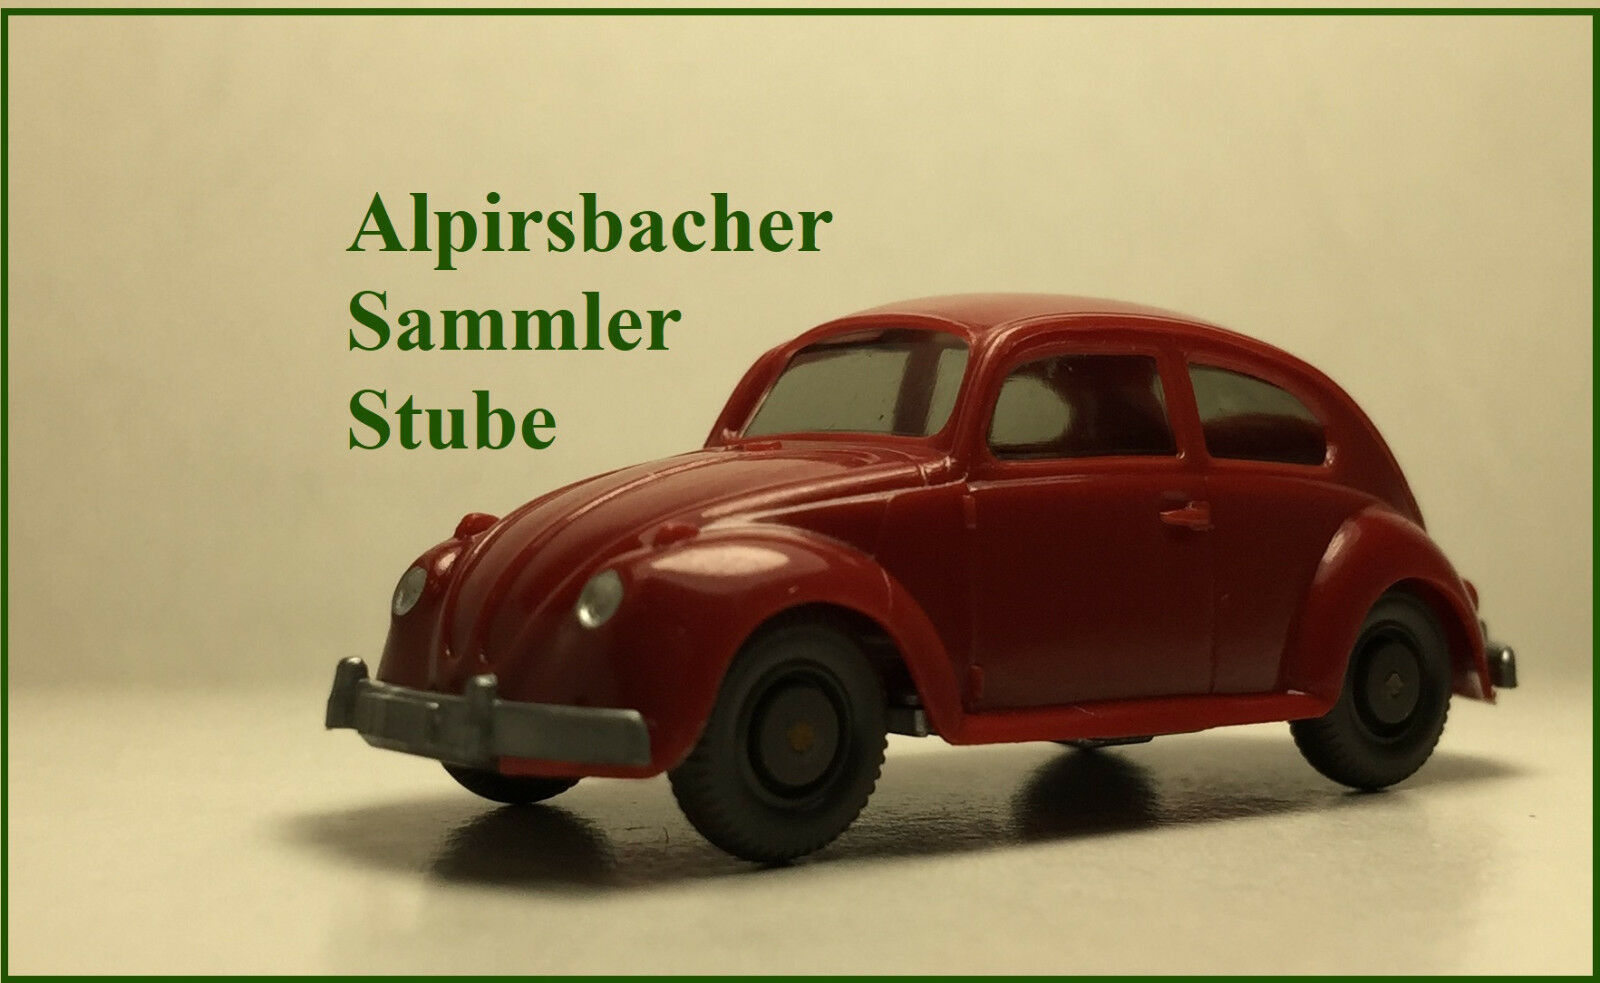 A.S.S WIKING ALTER VW VW VW KÄFER 1200 TYP 5 WEINred GK 30 9A CS 301 3A 1.W TOP d07c13